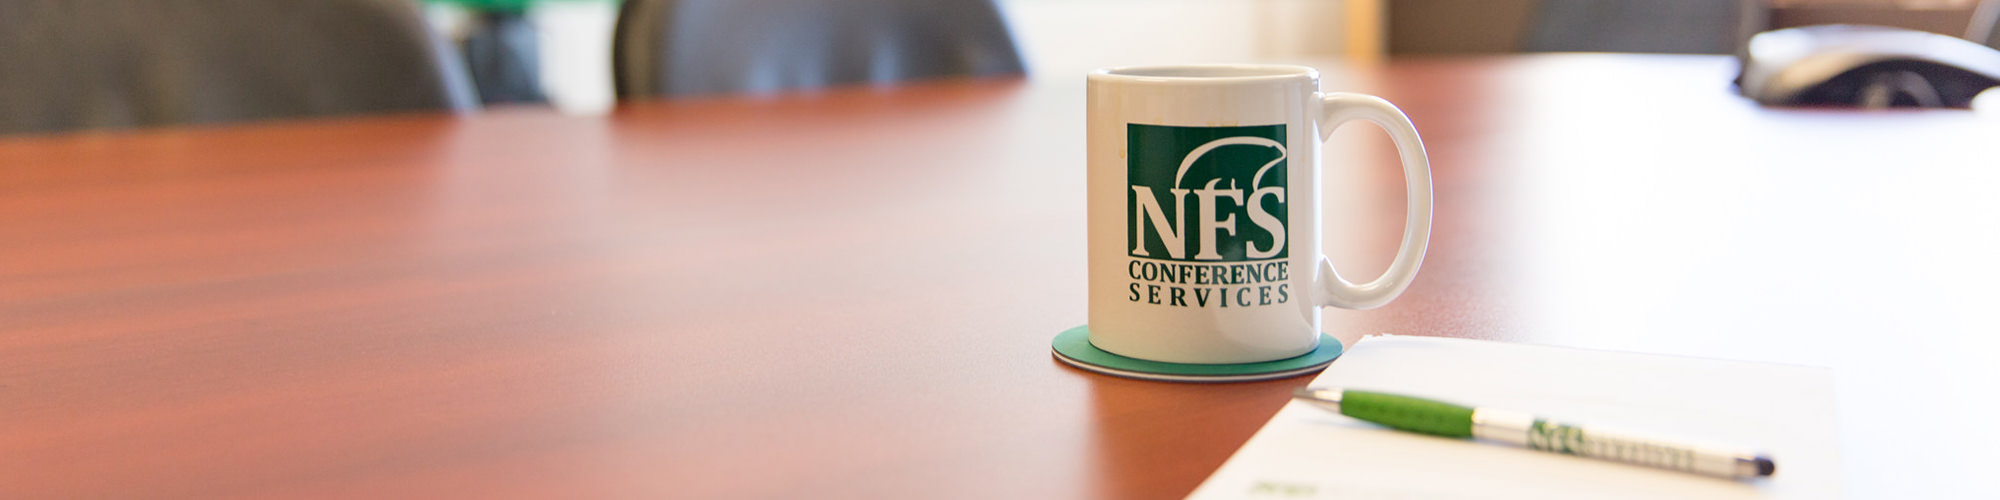 NFS » Conference Rooms in Yellowknife